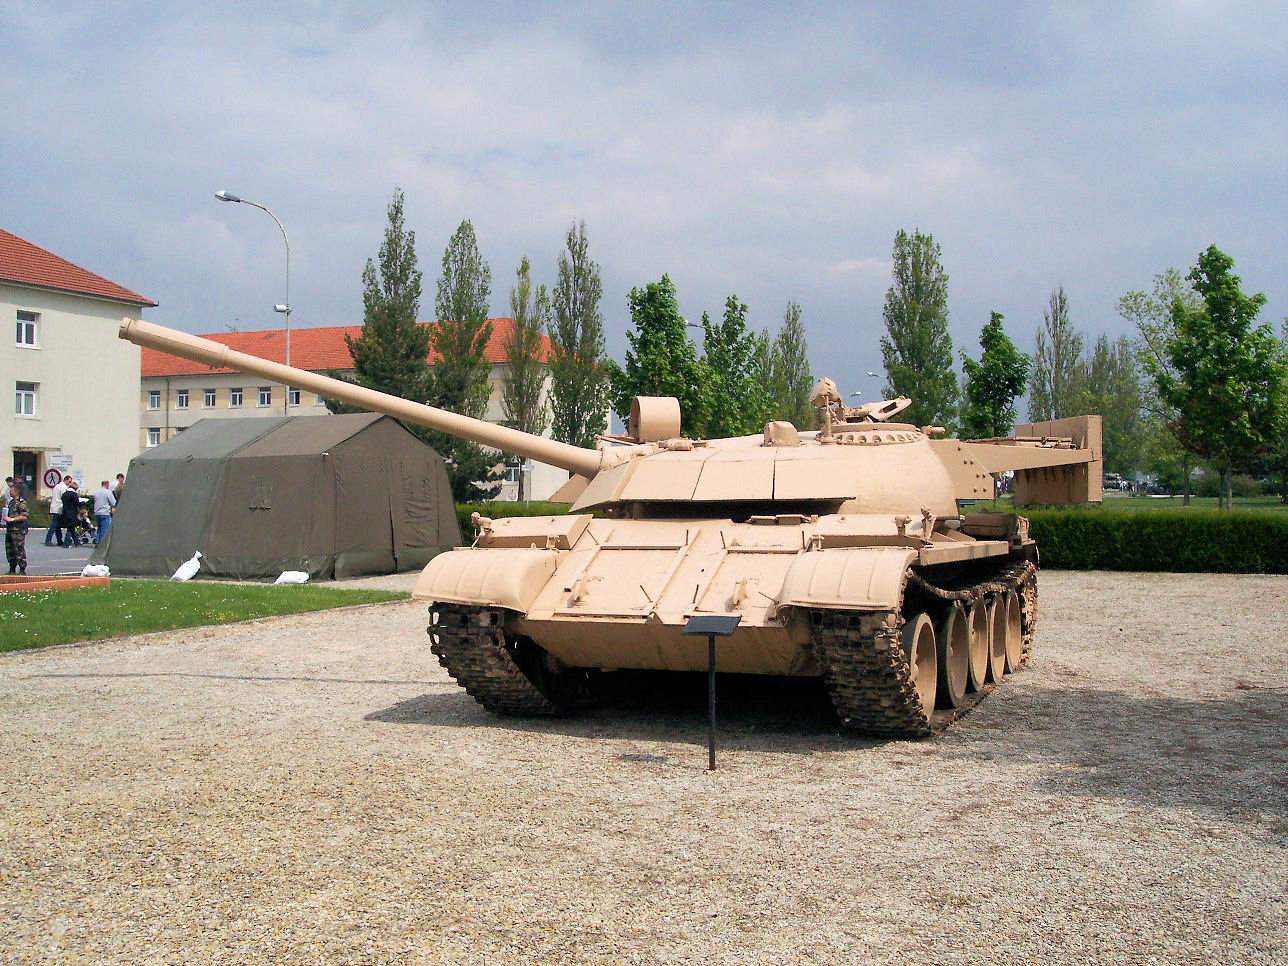 T-55 Enigma at Mourmelon-le-Grand, France. The glacis armor boxes are missing.